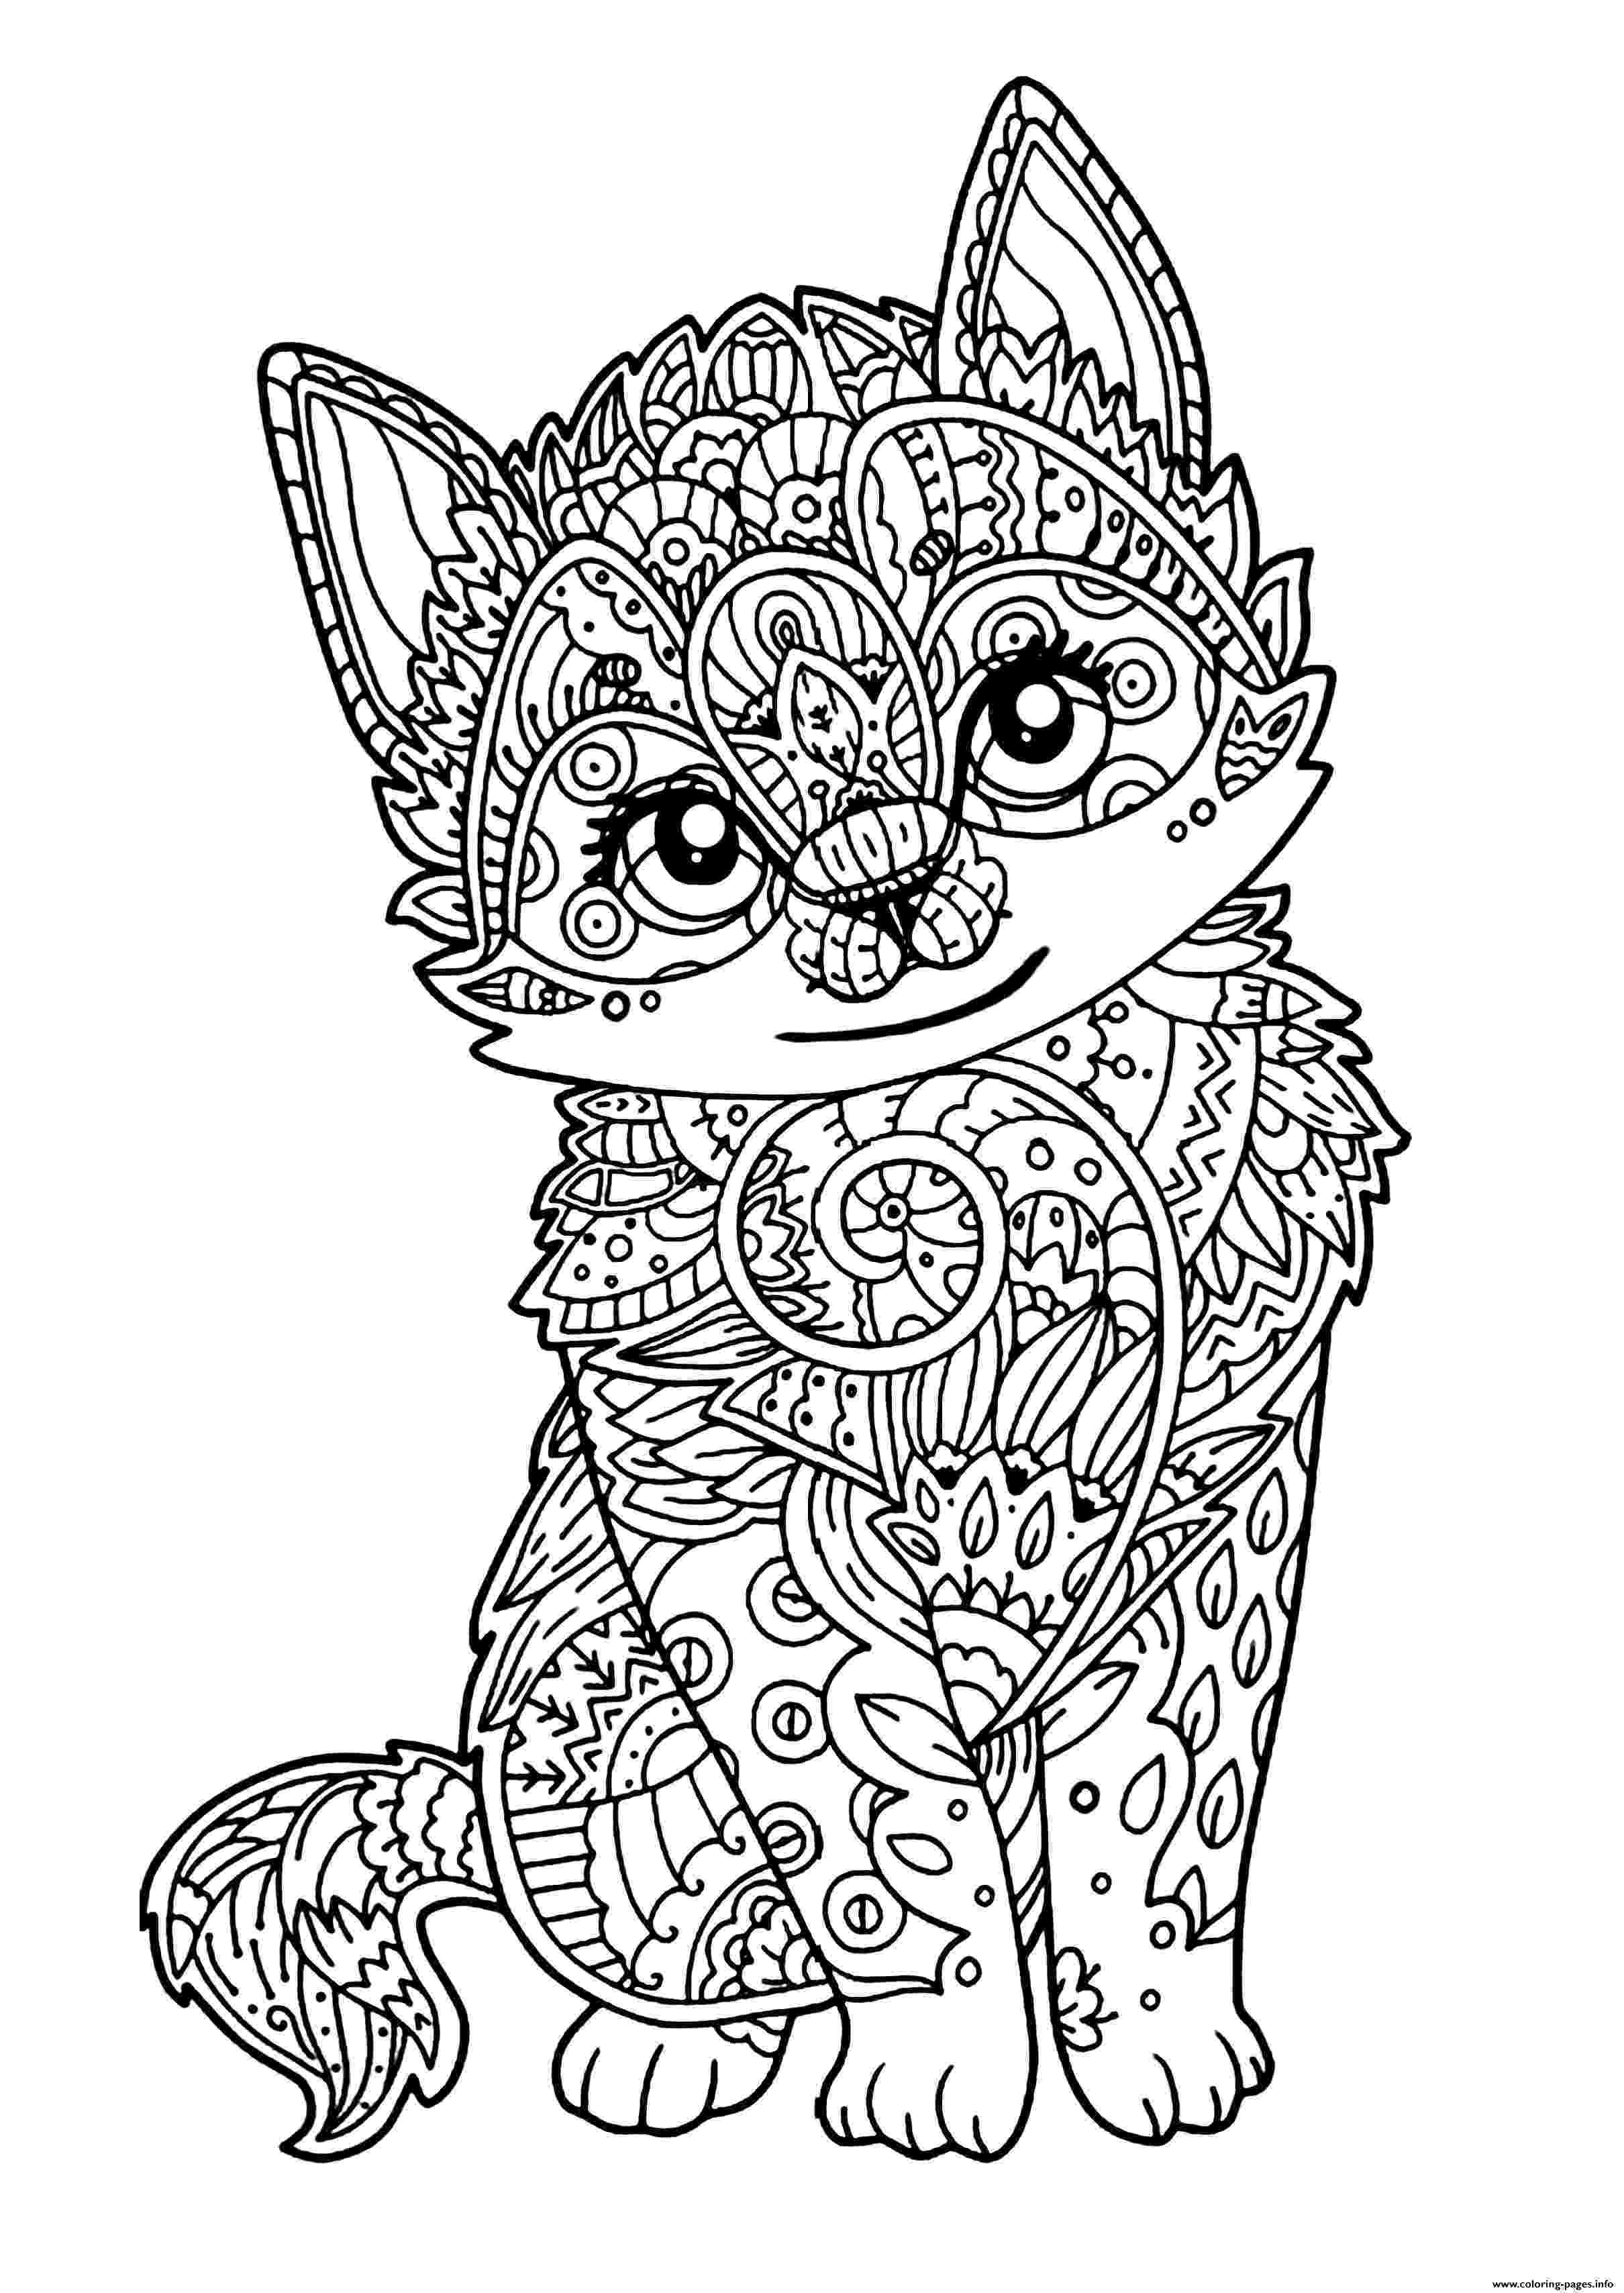 free detailed coloring pages pin by jaime treat on drawing mandala coloring pages pages coloring detailed free